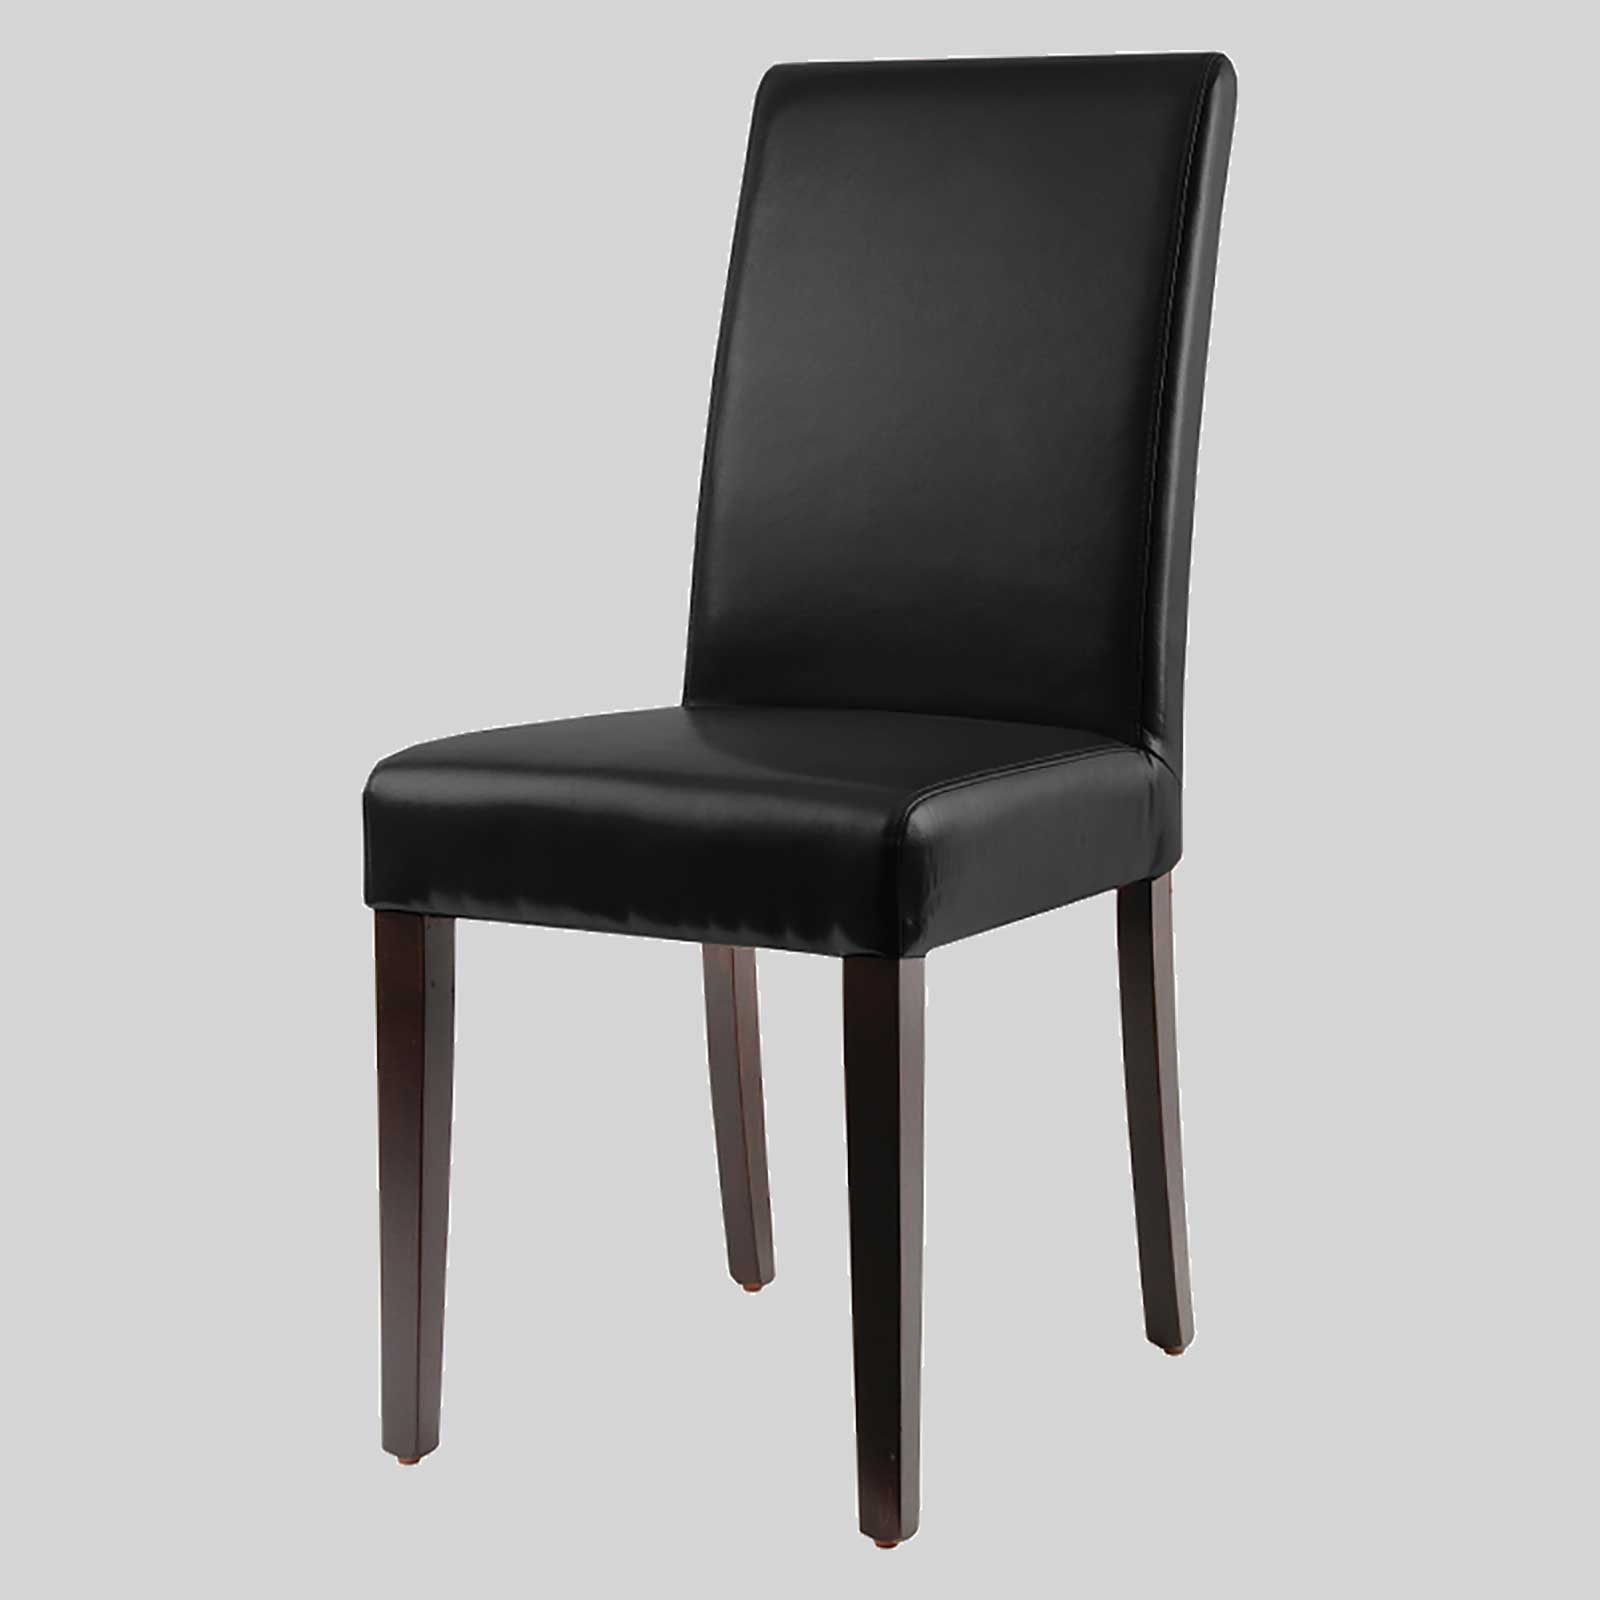 Leather chair for formal dining hudson concept collections for Formal dining chairs